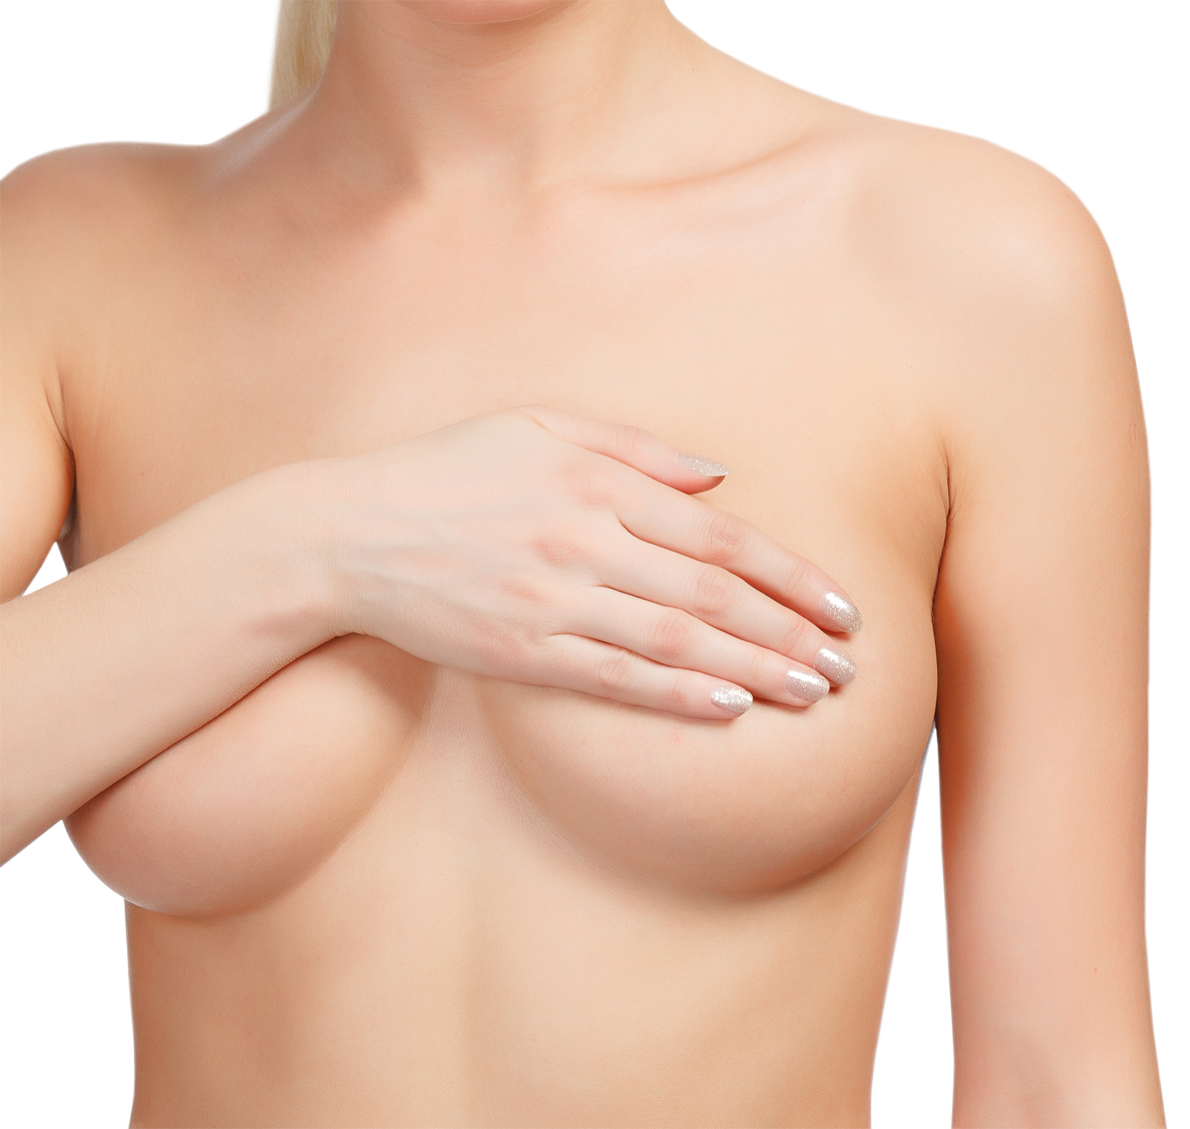 Torso of naked woman covering her breasts.